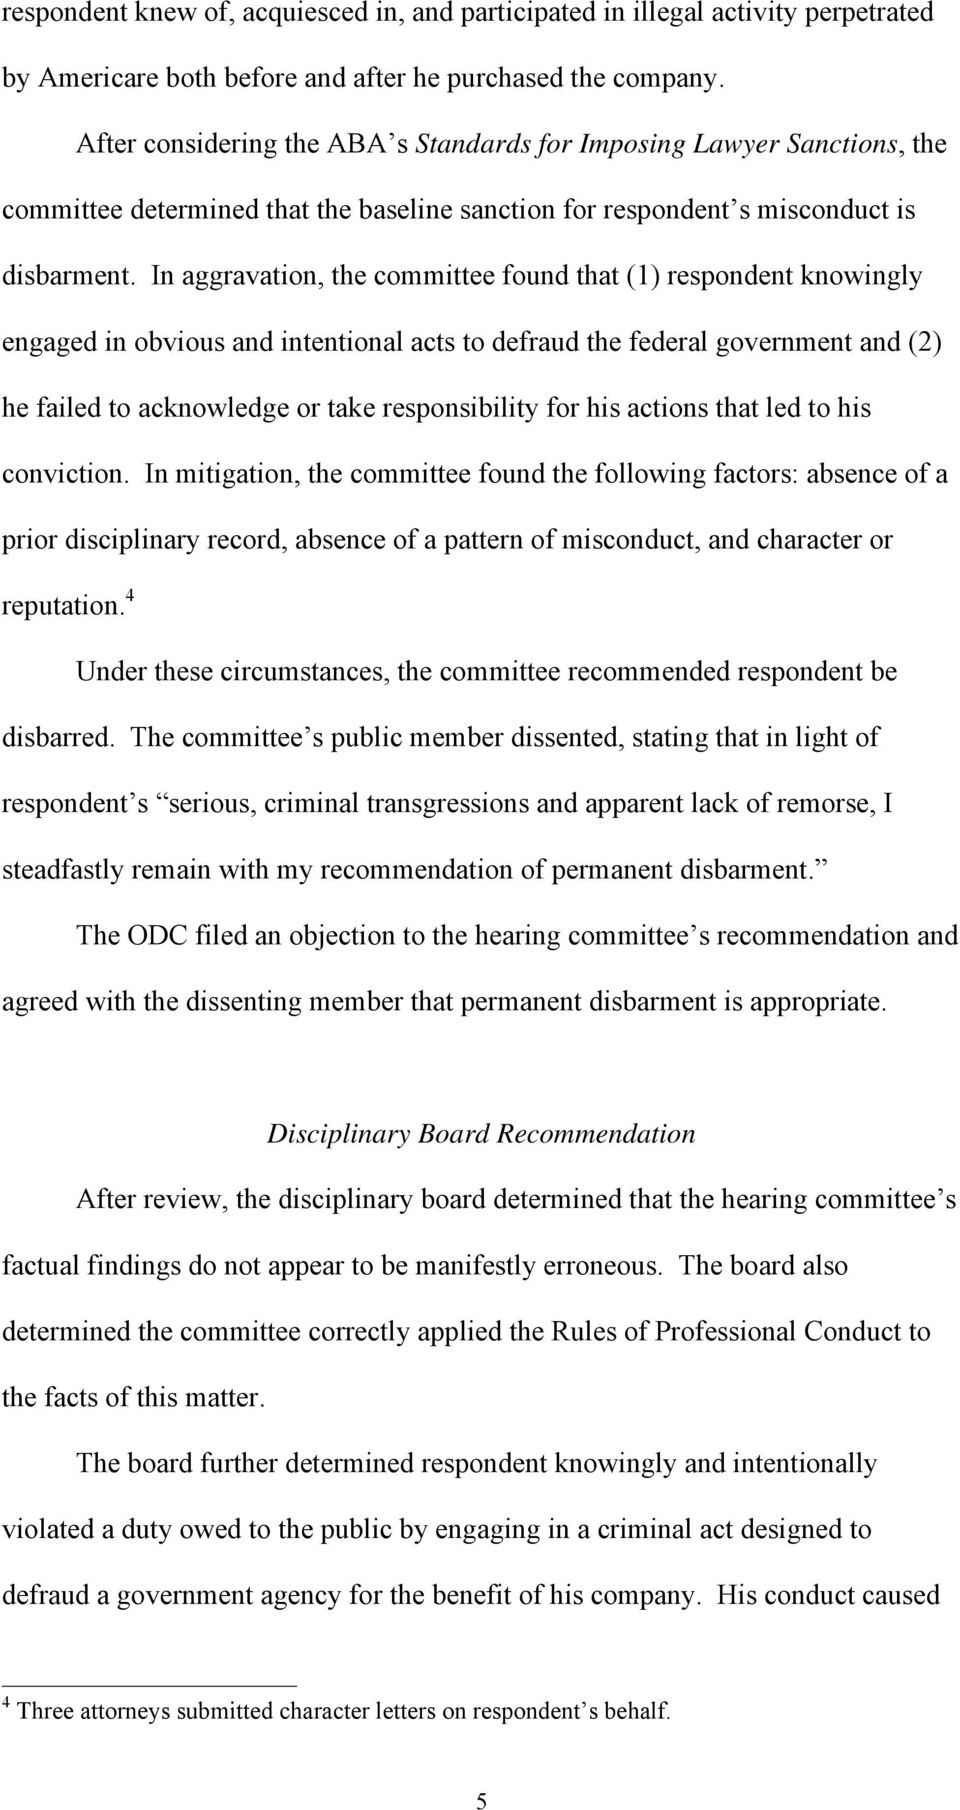 In aggravation, the committee found that (1) respondent knowingly engaged in obvious and intentional acts to defraud the federal government and (2) he failed to acknowledge or take responsibility for